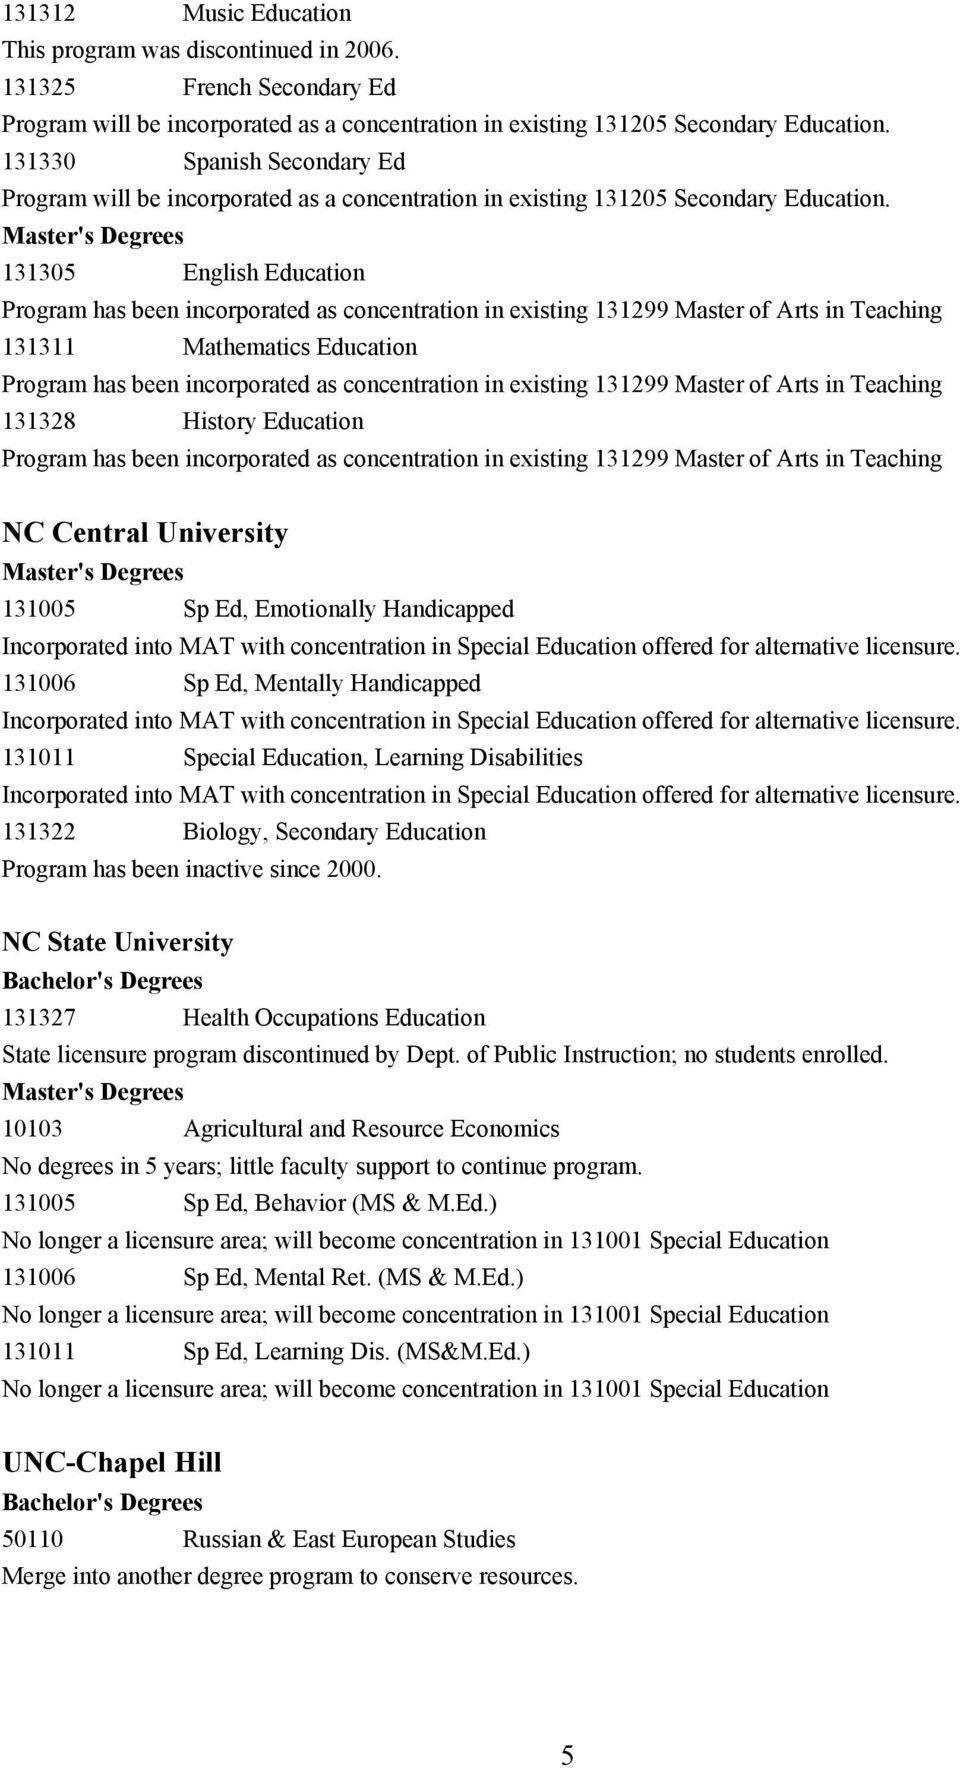 131305 English Education Program has been incorporated as concentration in existing 131299 Master of Arts in Teaching 131311 Mathematics Education Program has been incorporated as concentration in